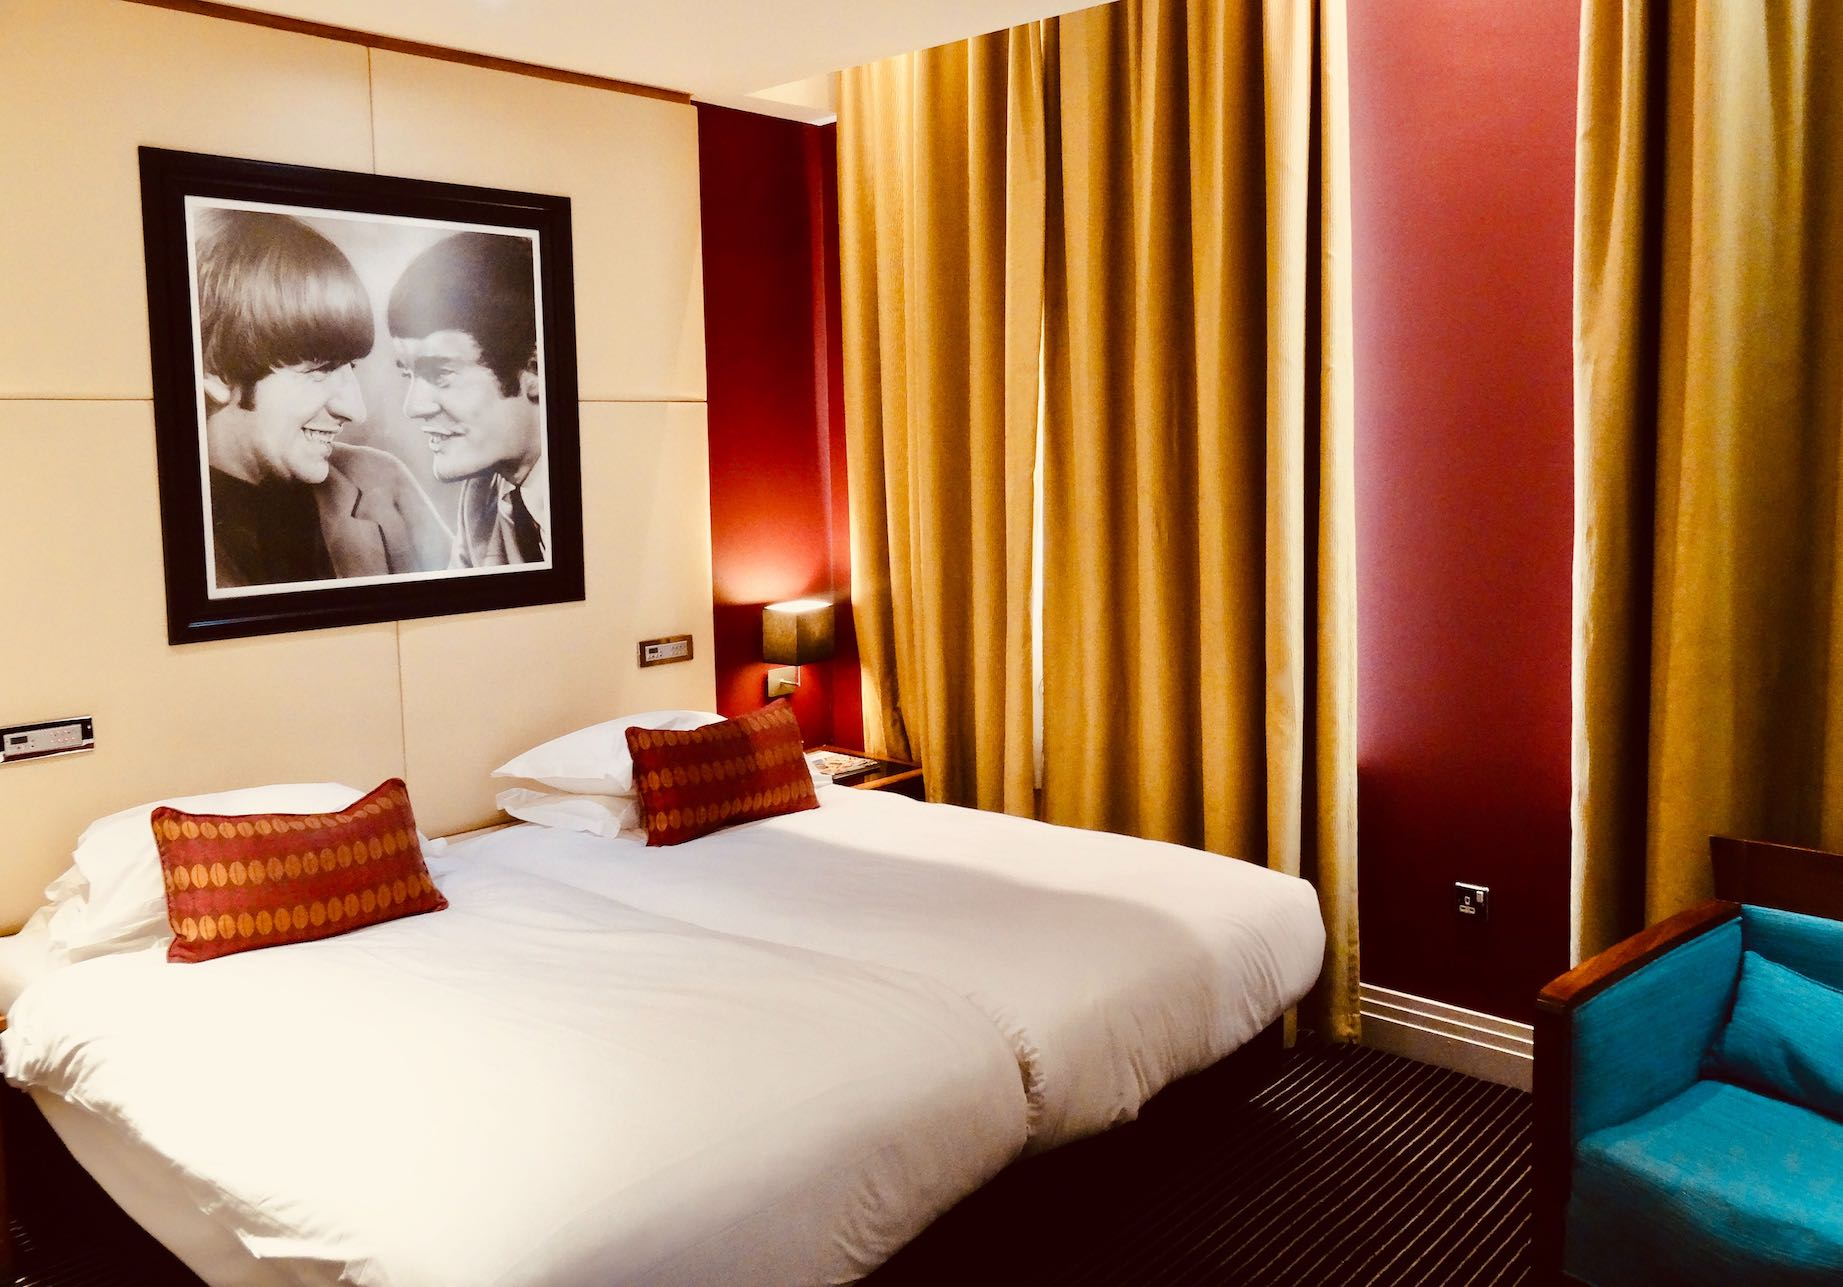 A double room at the Hard Days Night Hotel in Liverpool